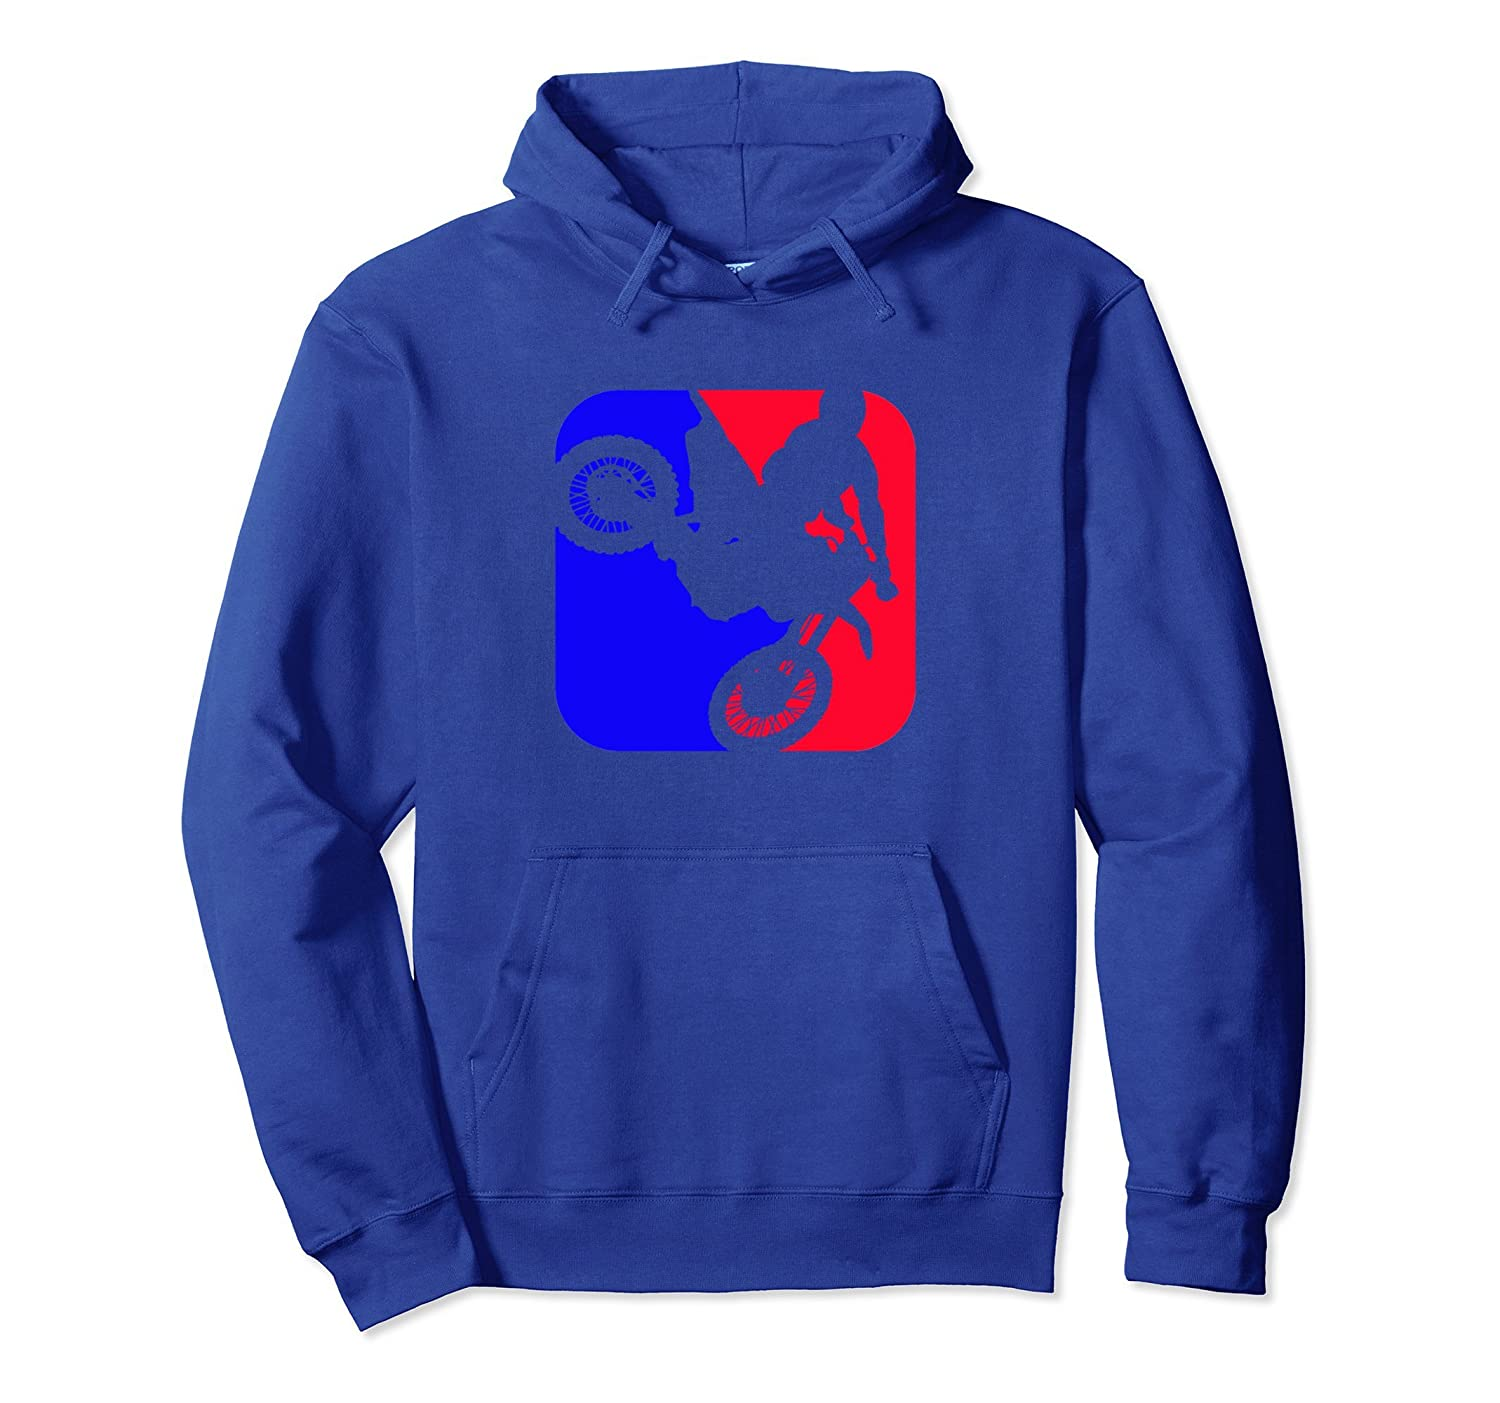 Blue and Red Motocross Rider Supercross Hooded Sweatshirt-ah my shirt one gift